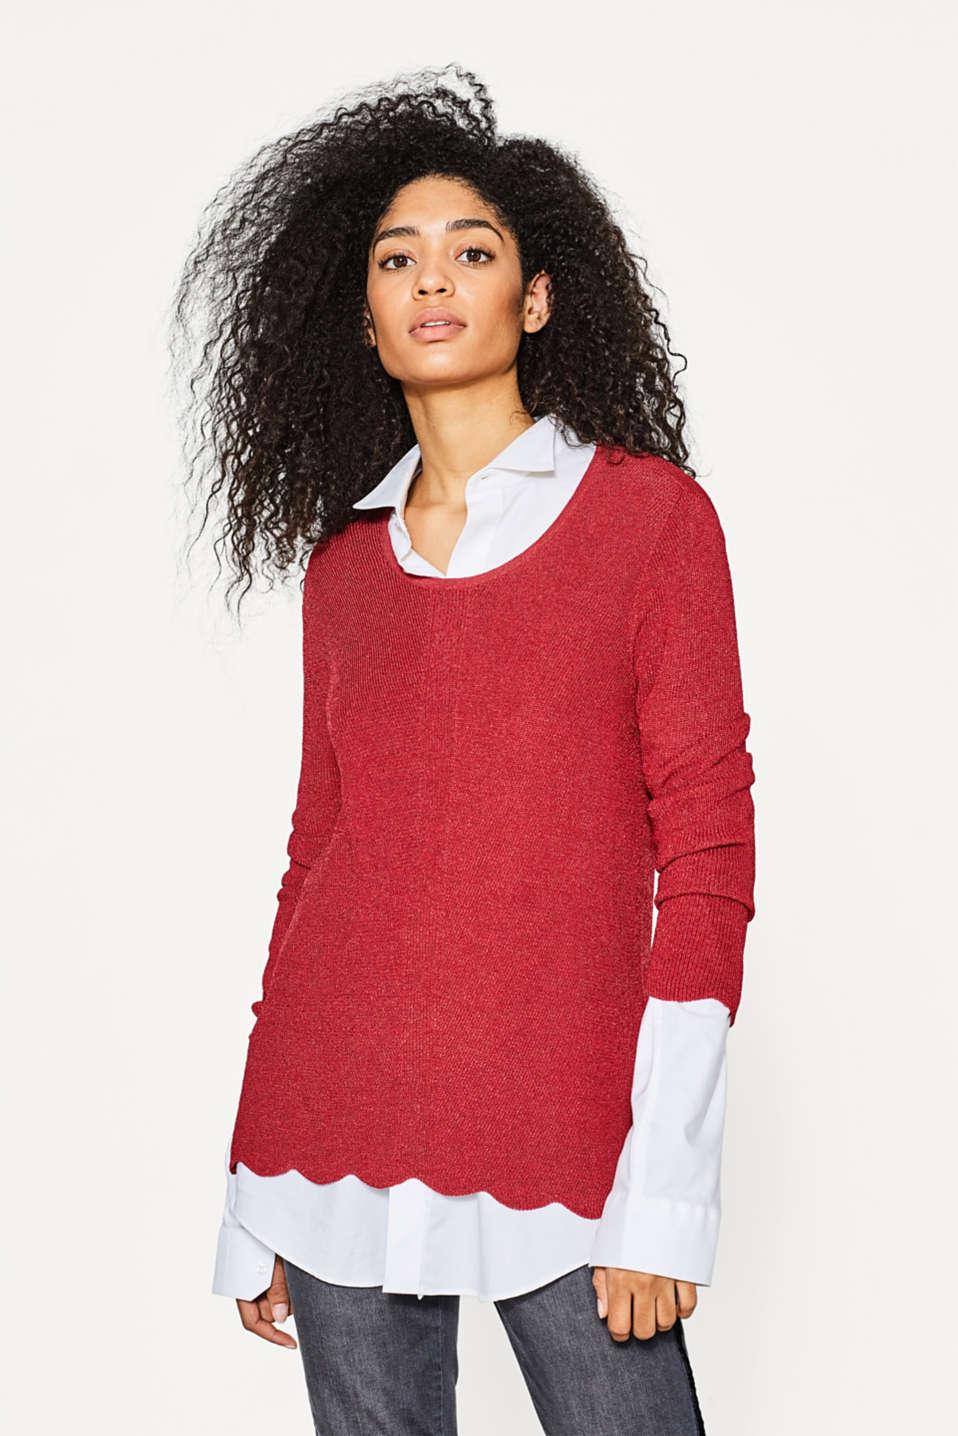 Esprit - Textured jumper with a scalloped edge